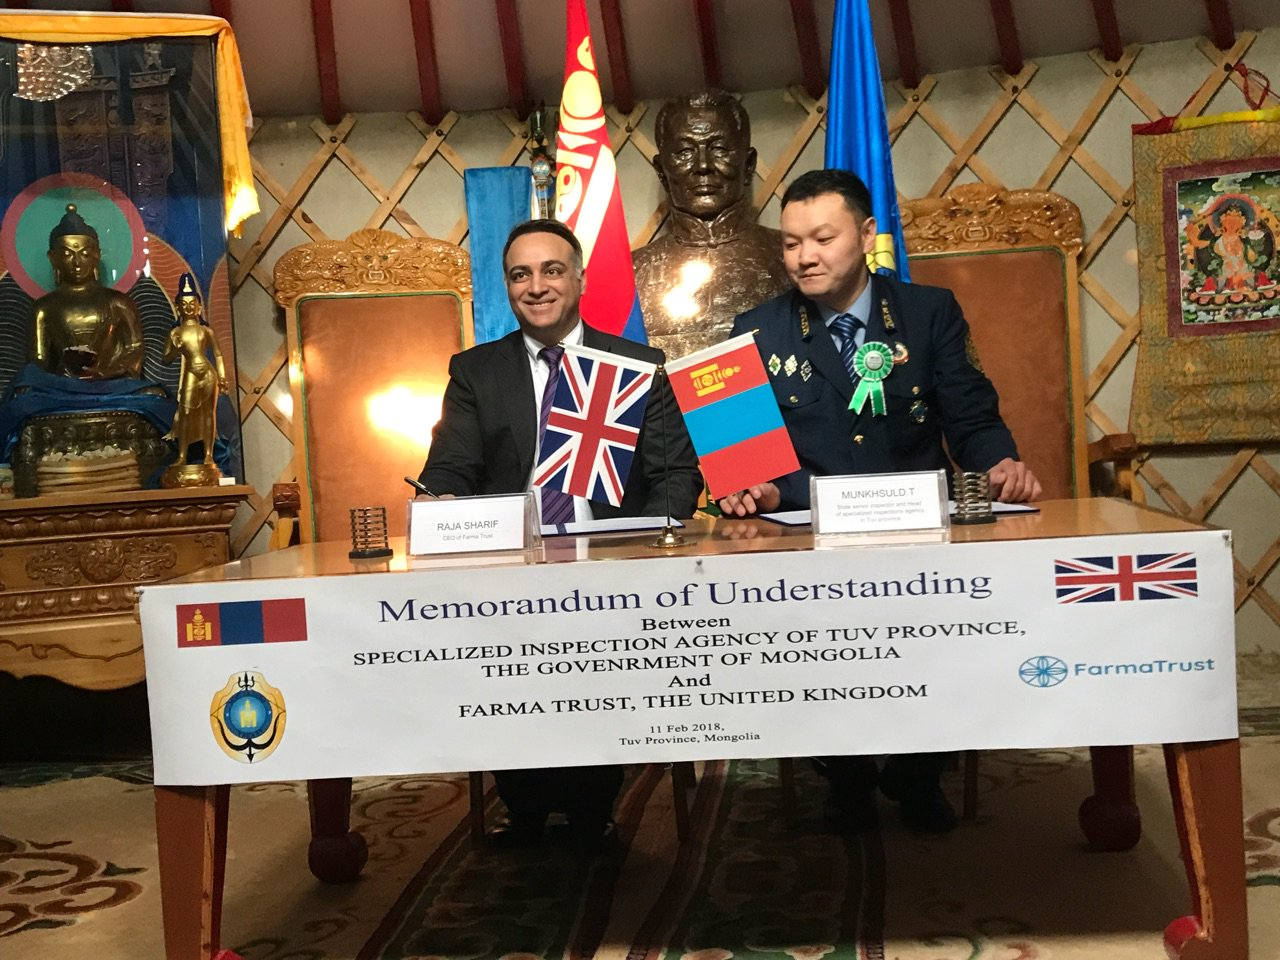 London Blockchain Startup FarmaTrust Partners with Mongolian Government